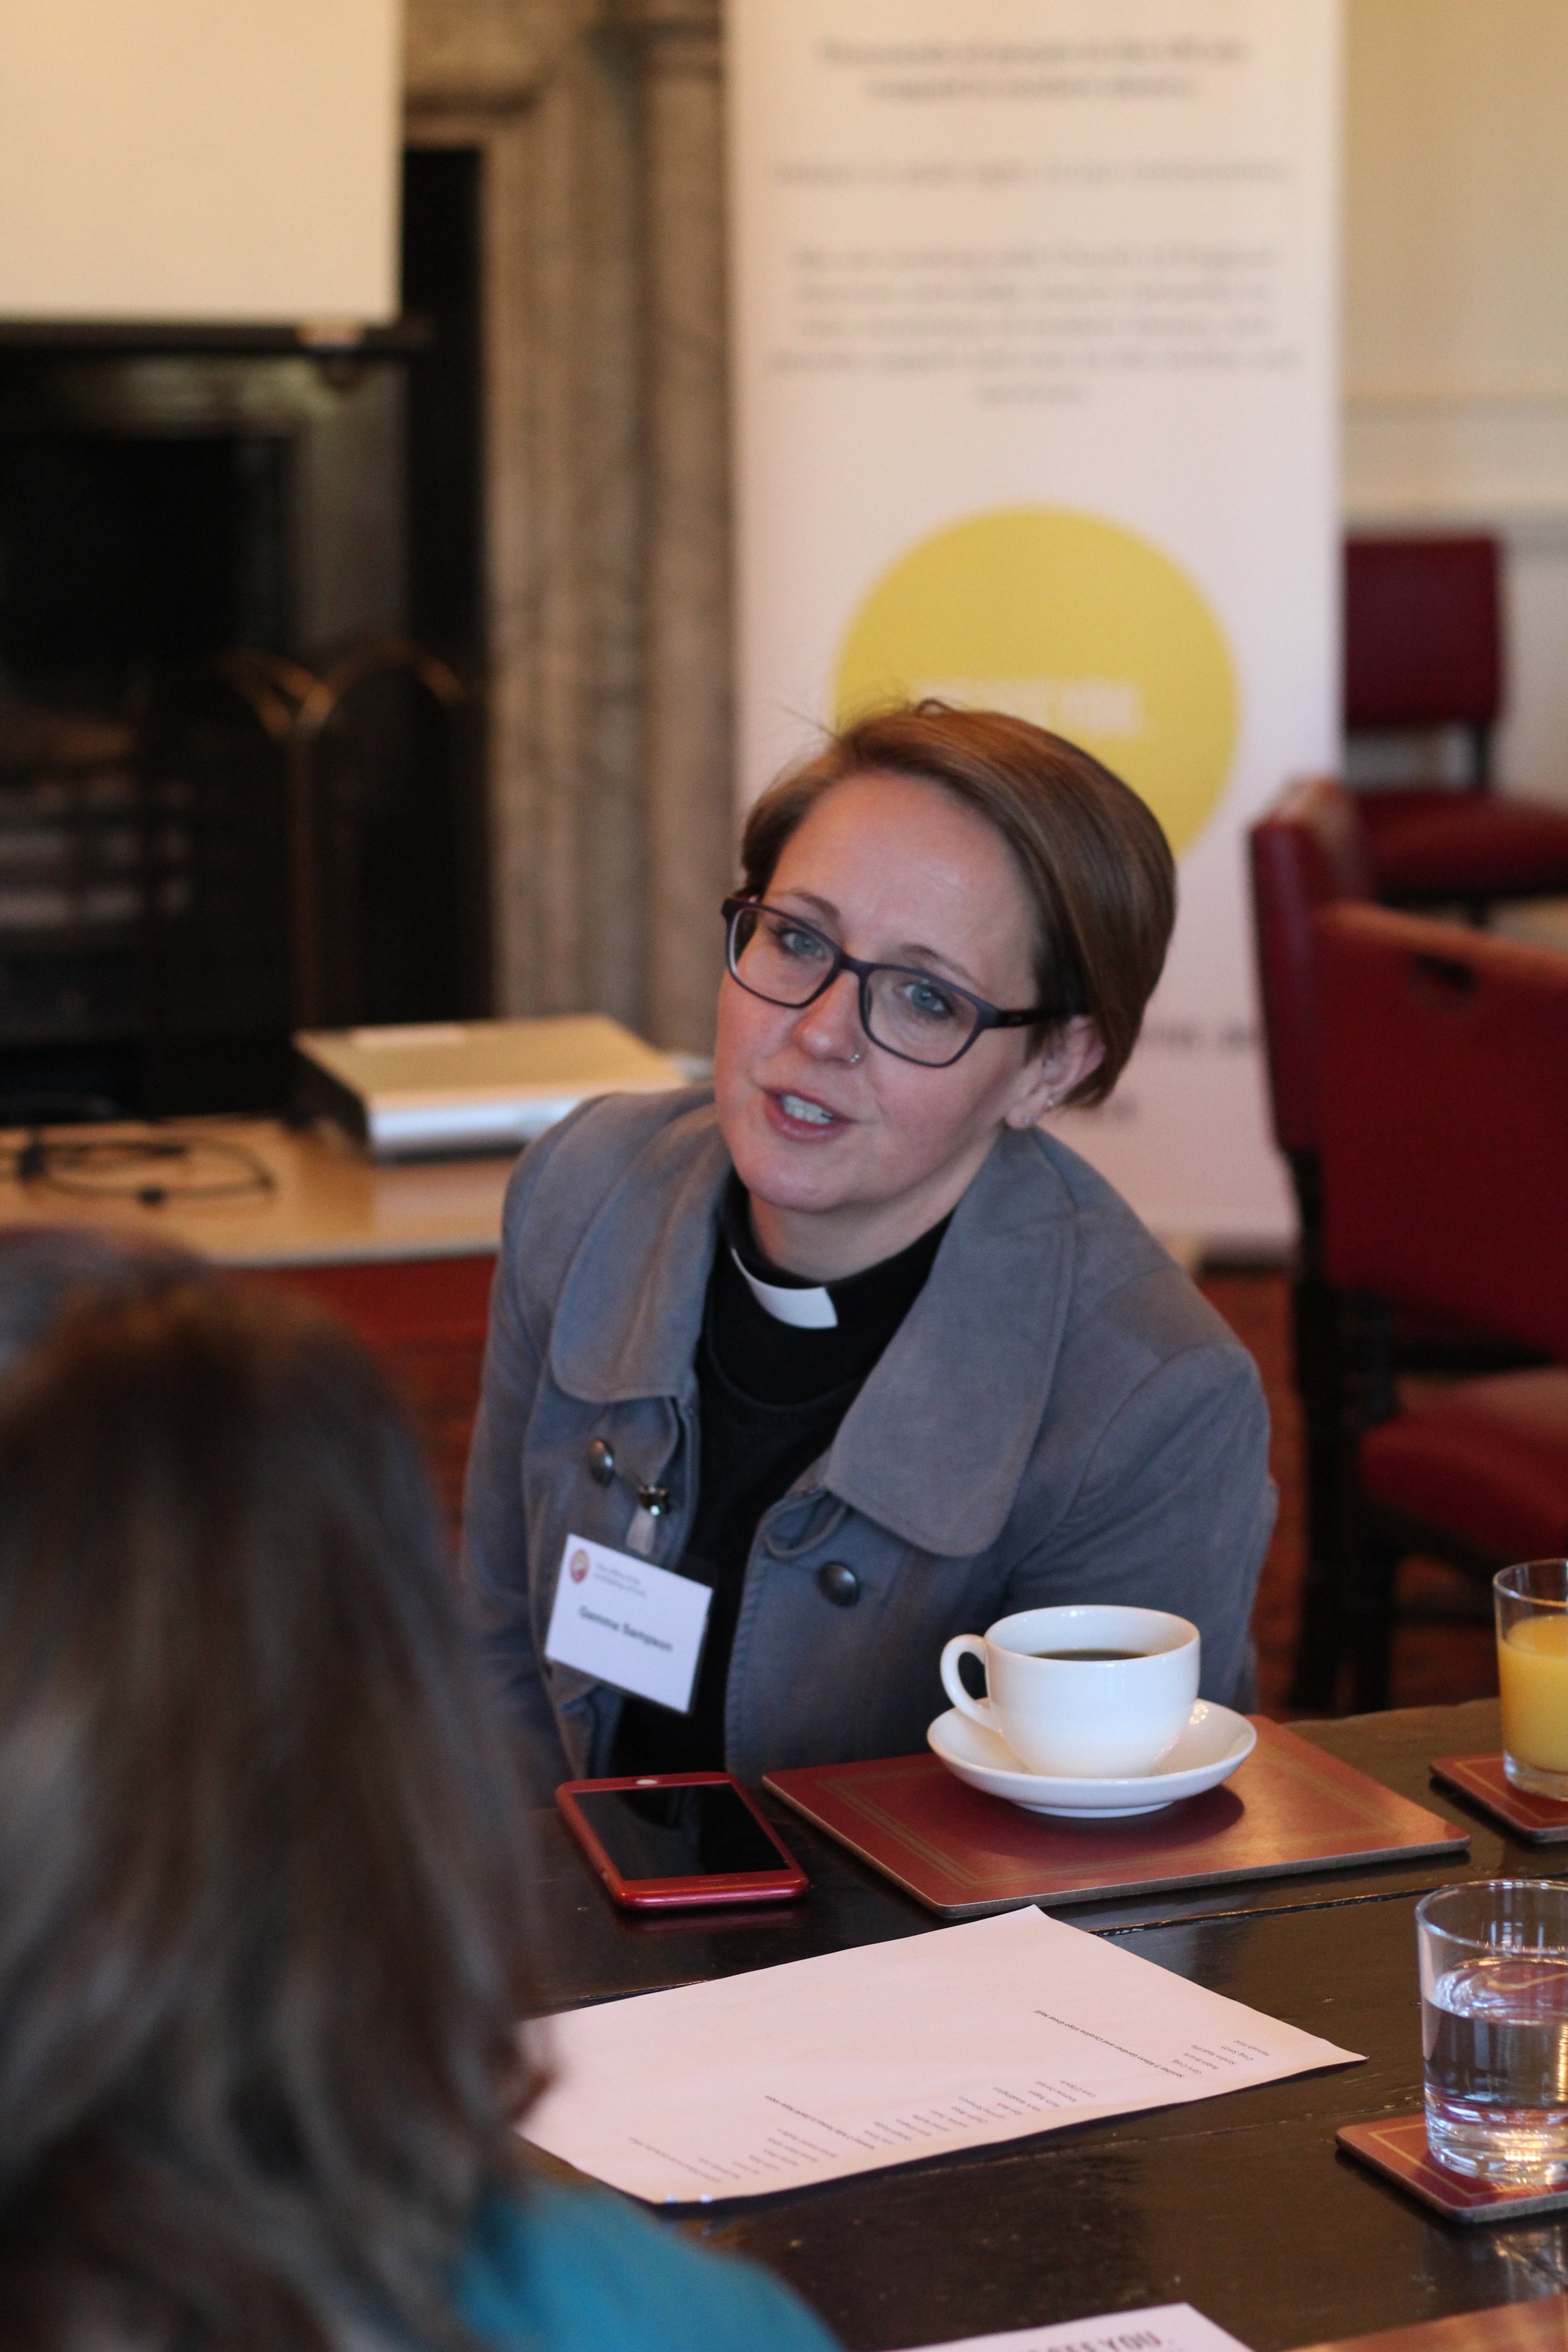 Revd Gemma from Durham Diocese